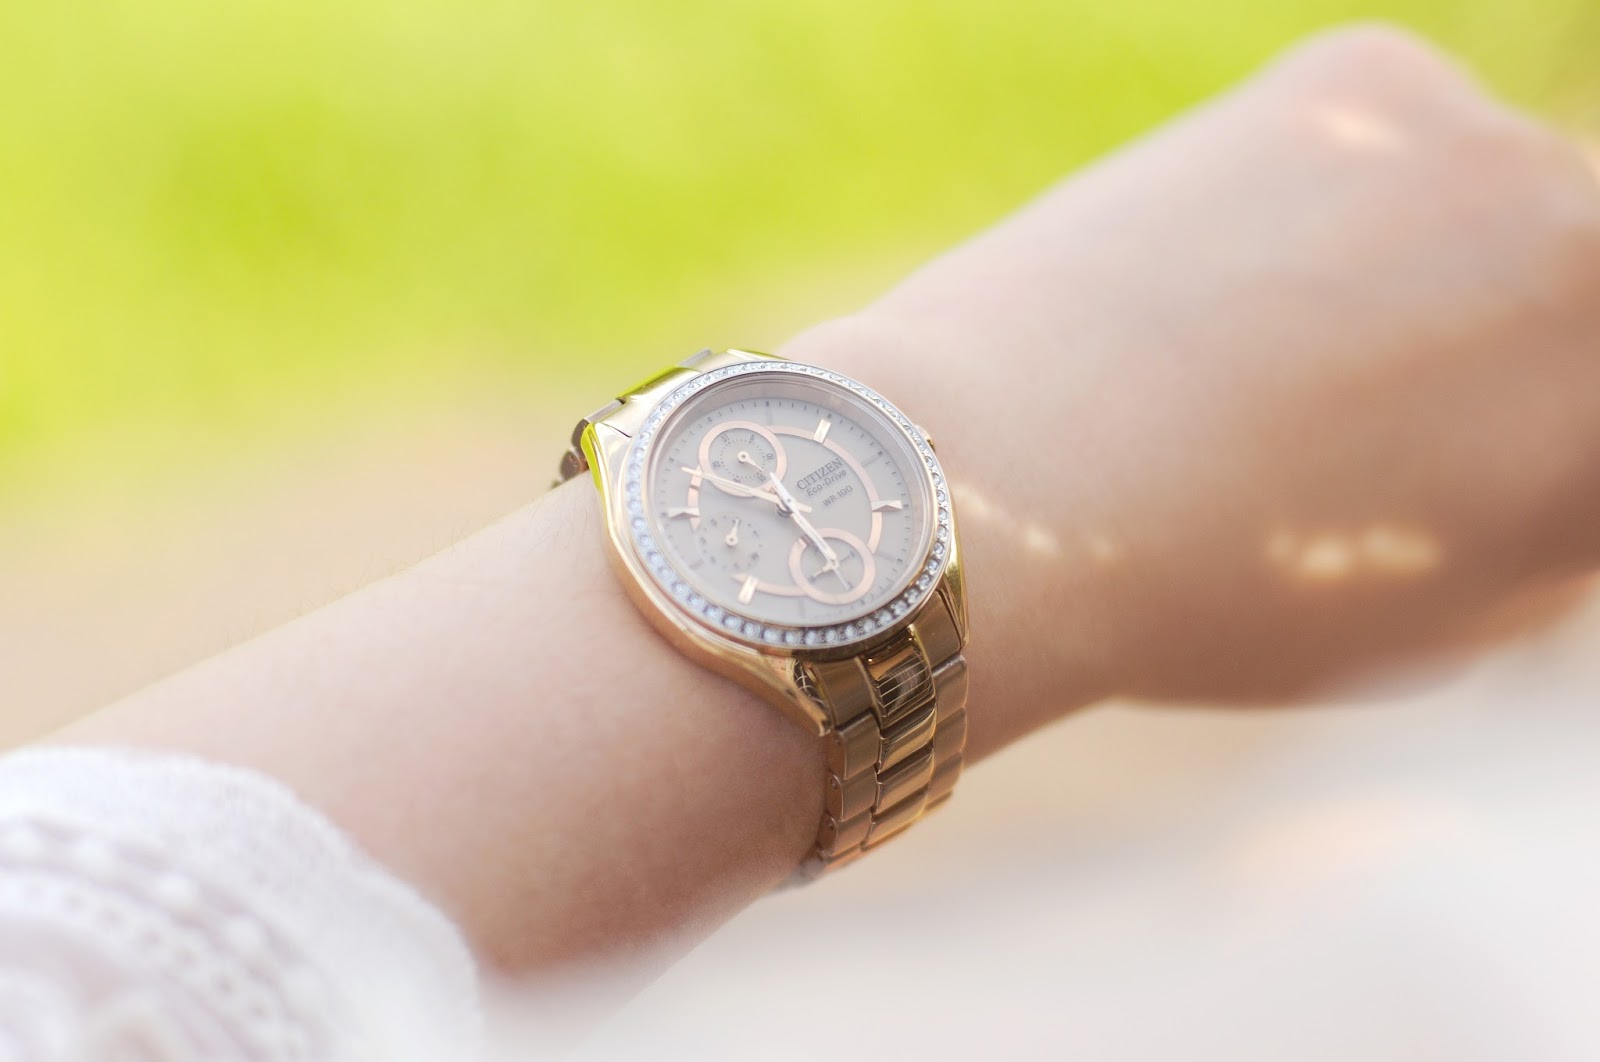 citizen drive ladies watch, rose gold watch, alternative to michael kors